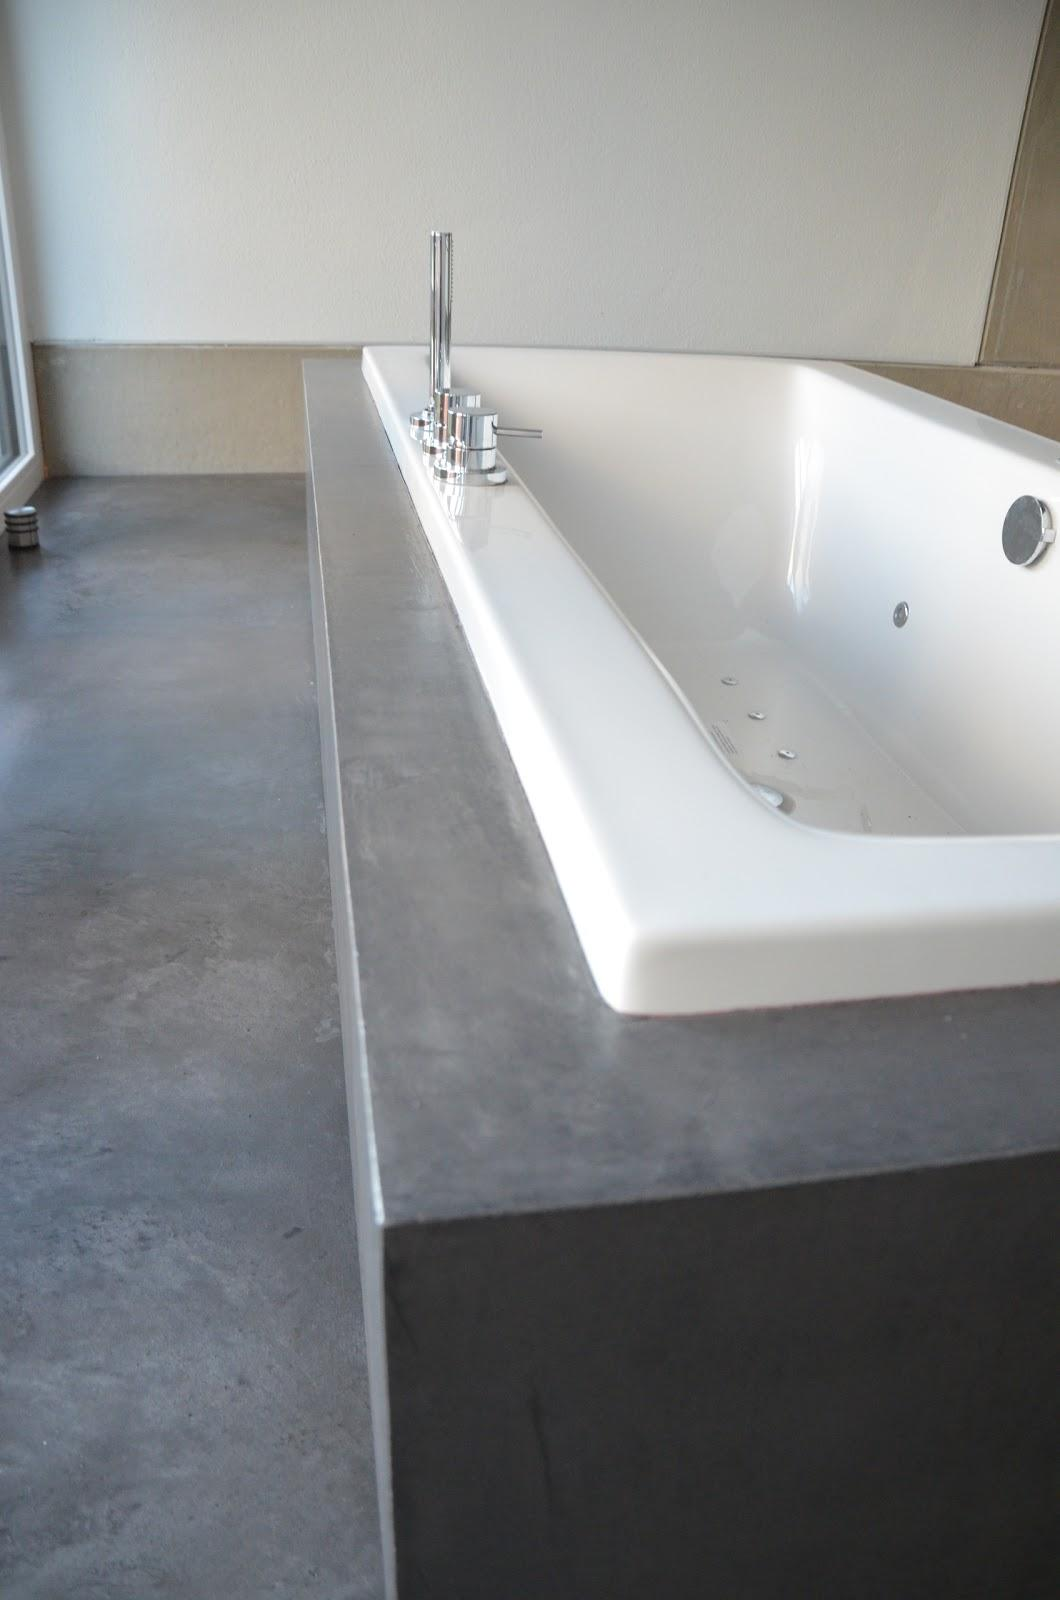 Eingelassene Badewanne eingelassene badewanne bilder ideen couchstyle